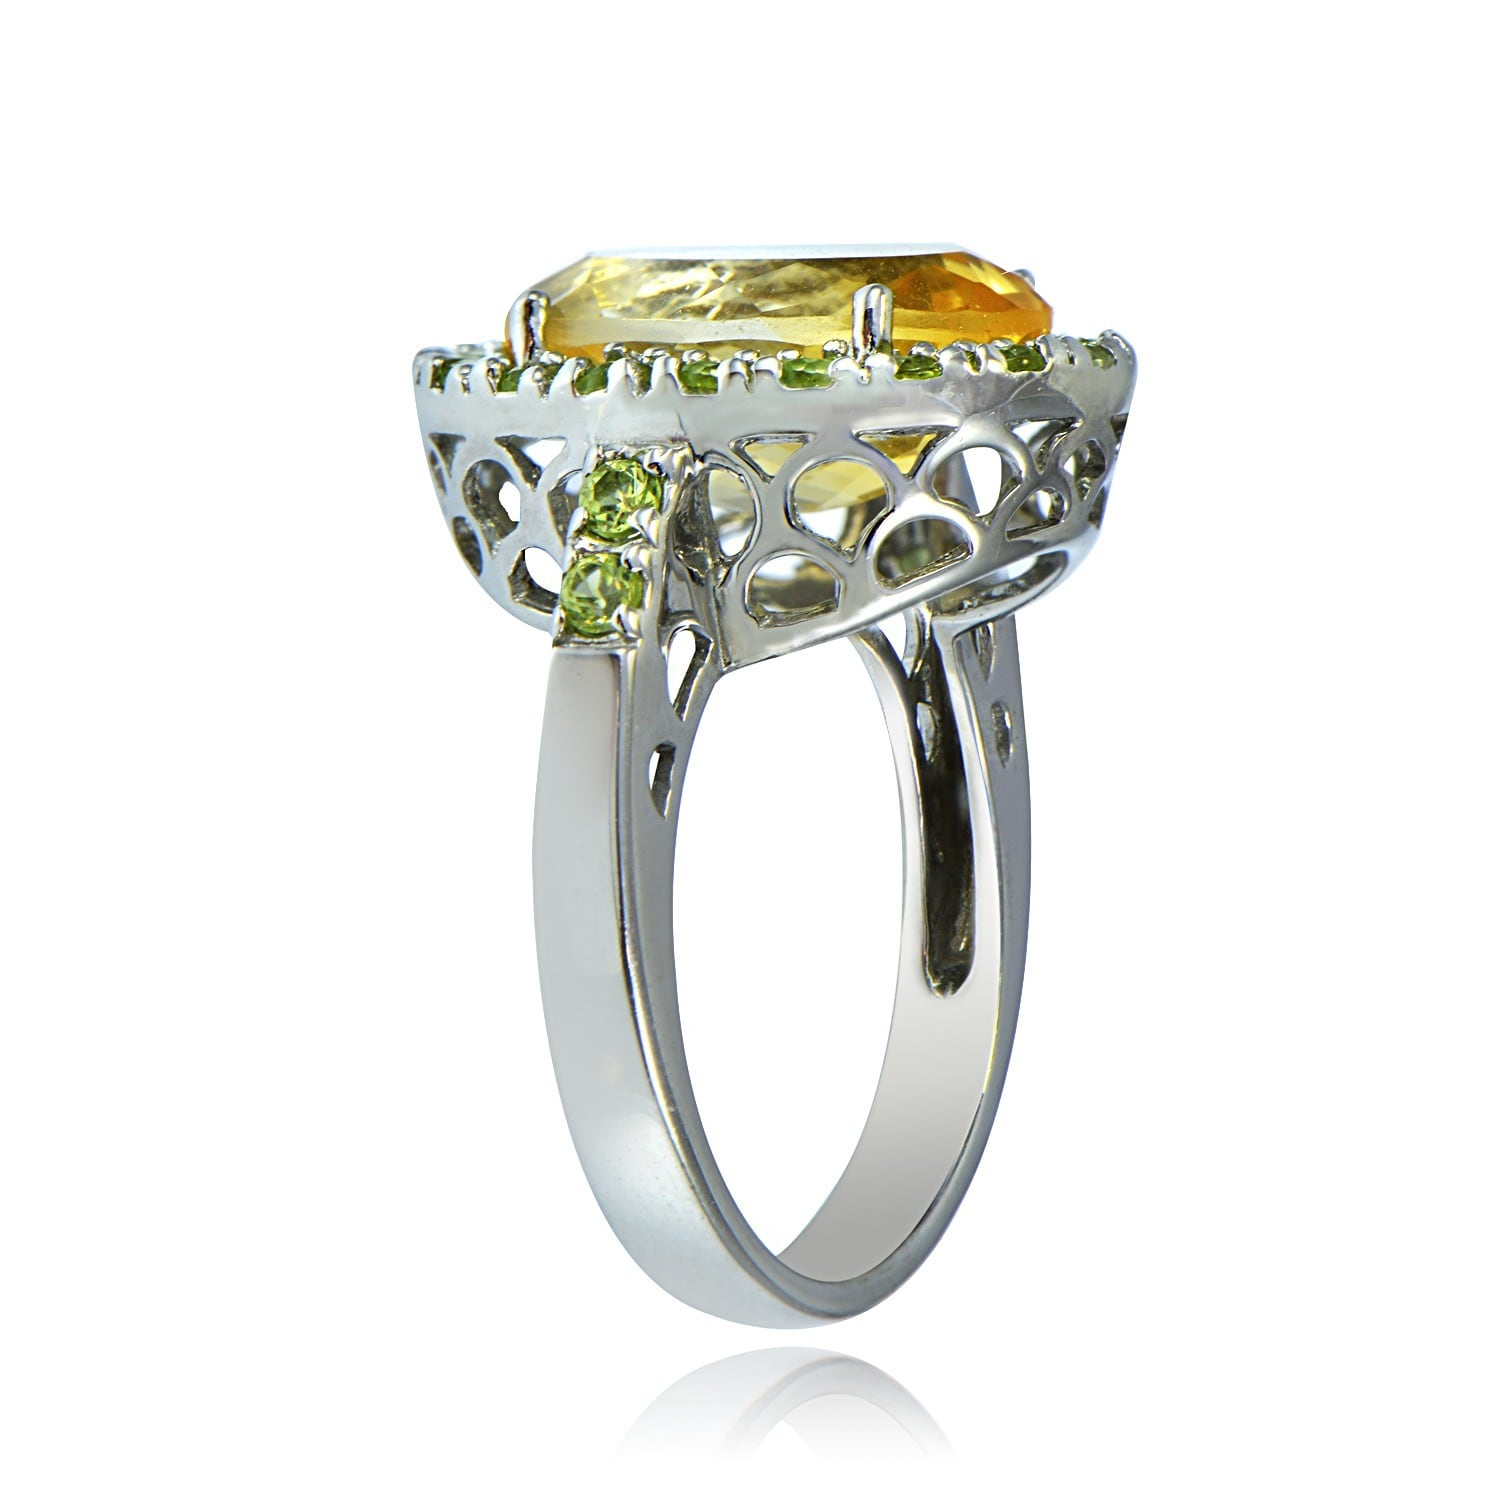 Glitzy Rocks Sterling Silver 6 5 CTW Citrine and Peridot Ring